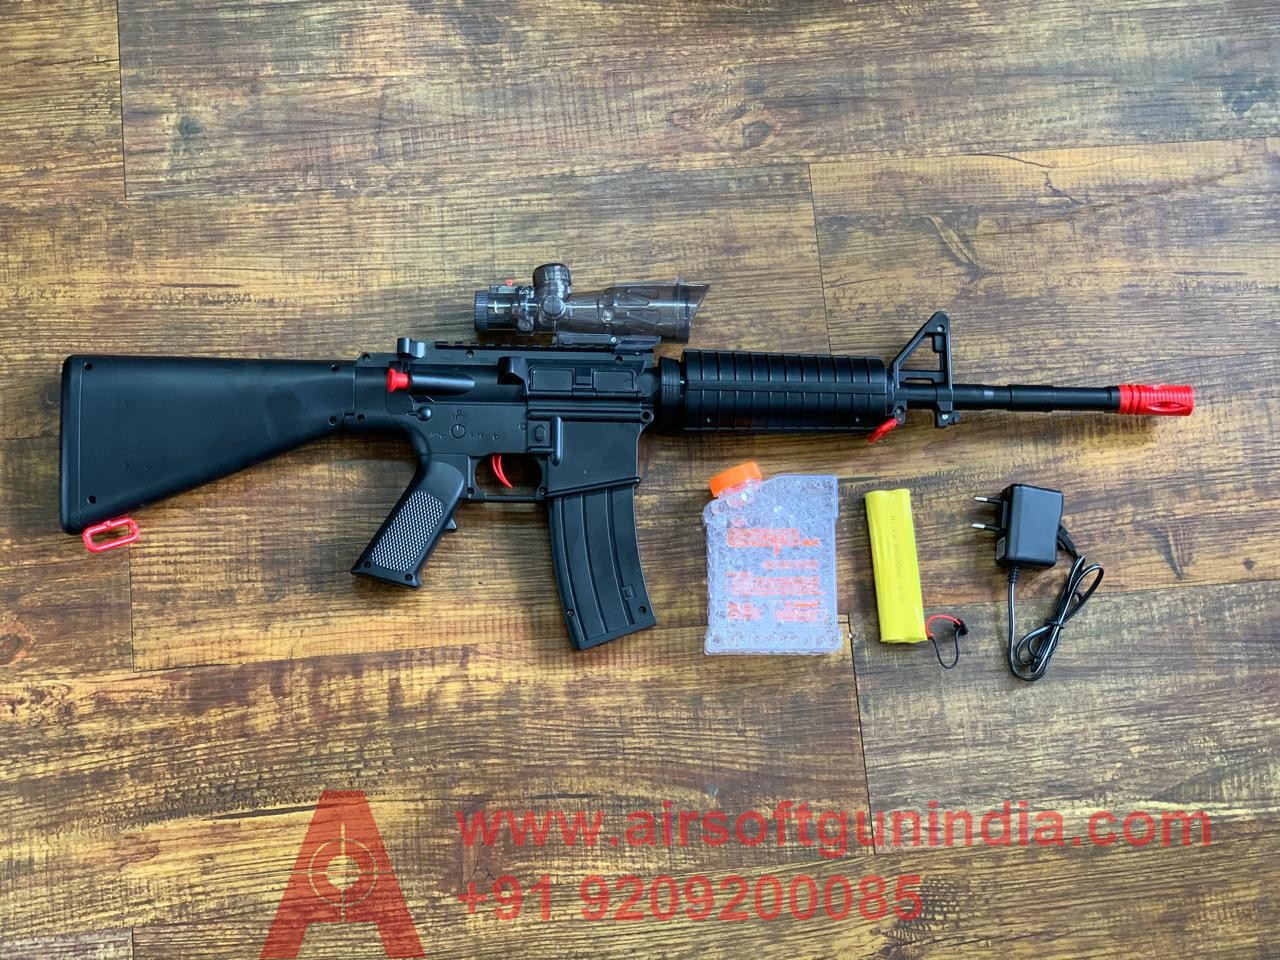 Pubg M16 Electric Automatic  Airsoft Gel Blaster By Airsoft Gun India